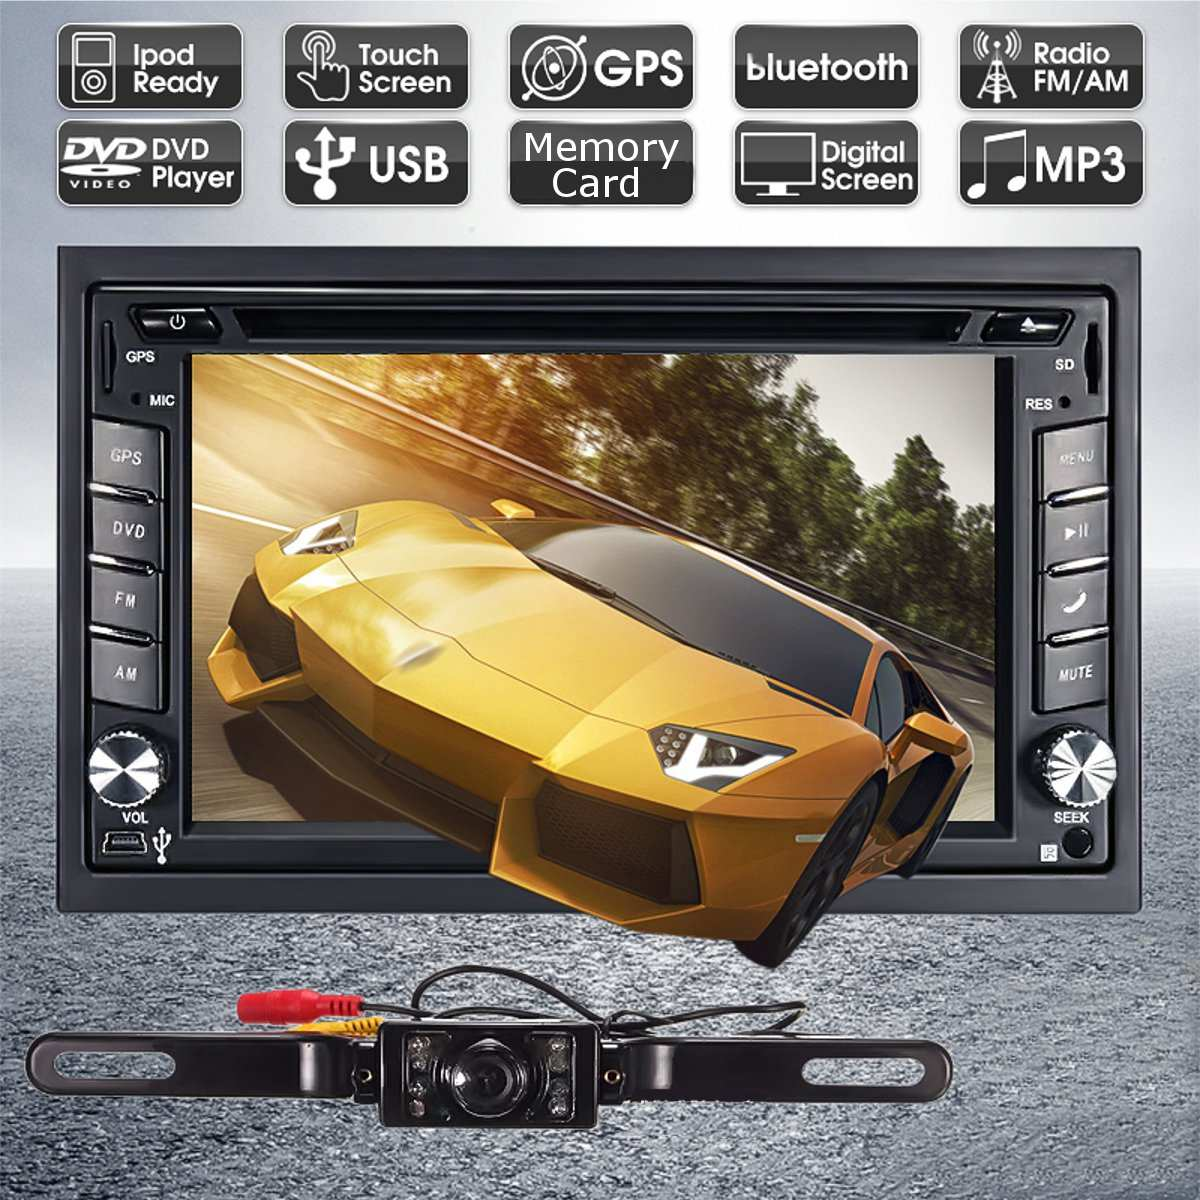 <font><b>GPS</b></font> Navigation HD <font><b>2DIN</b></font> <font><b>6.2</b></font> <font><b>Inch</b></font> Car Stereo DVD Player bluetooth for iPod MP3 Camera with North America Map or European map image